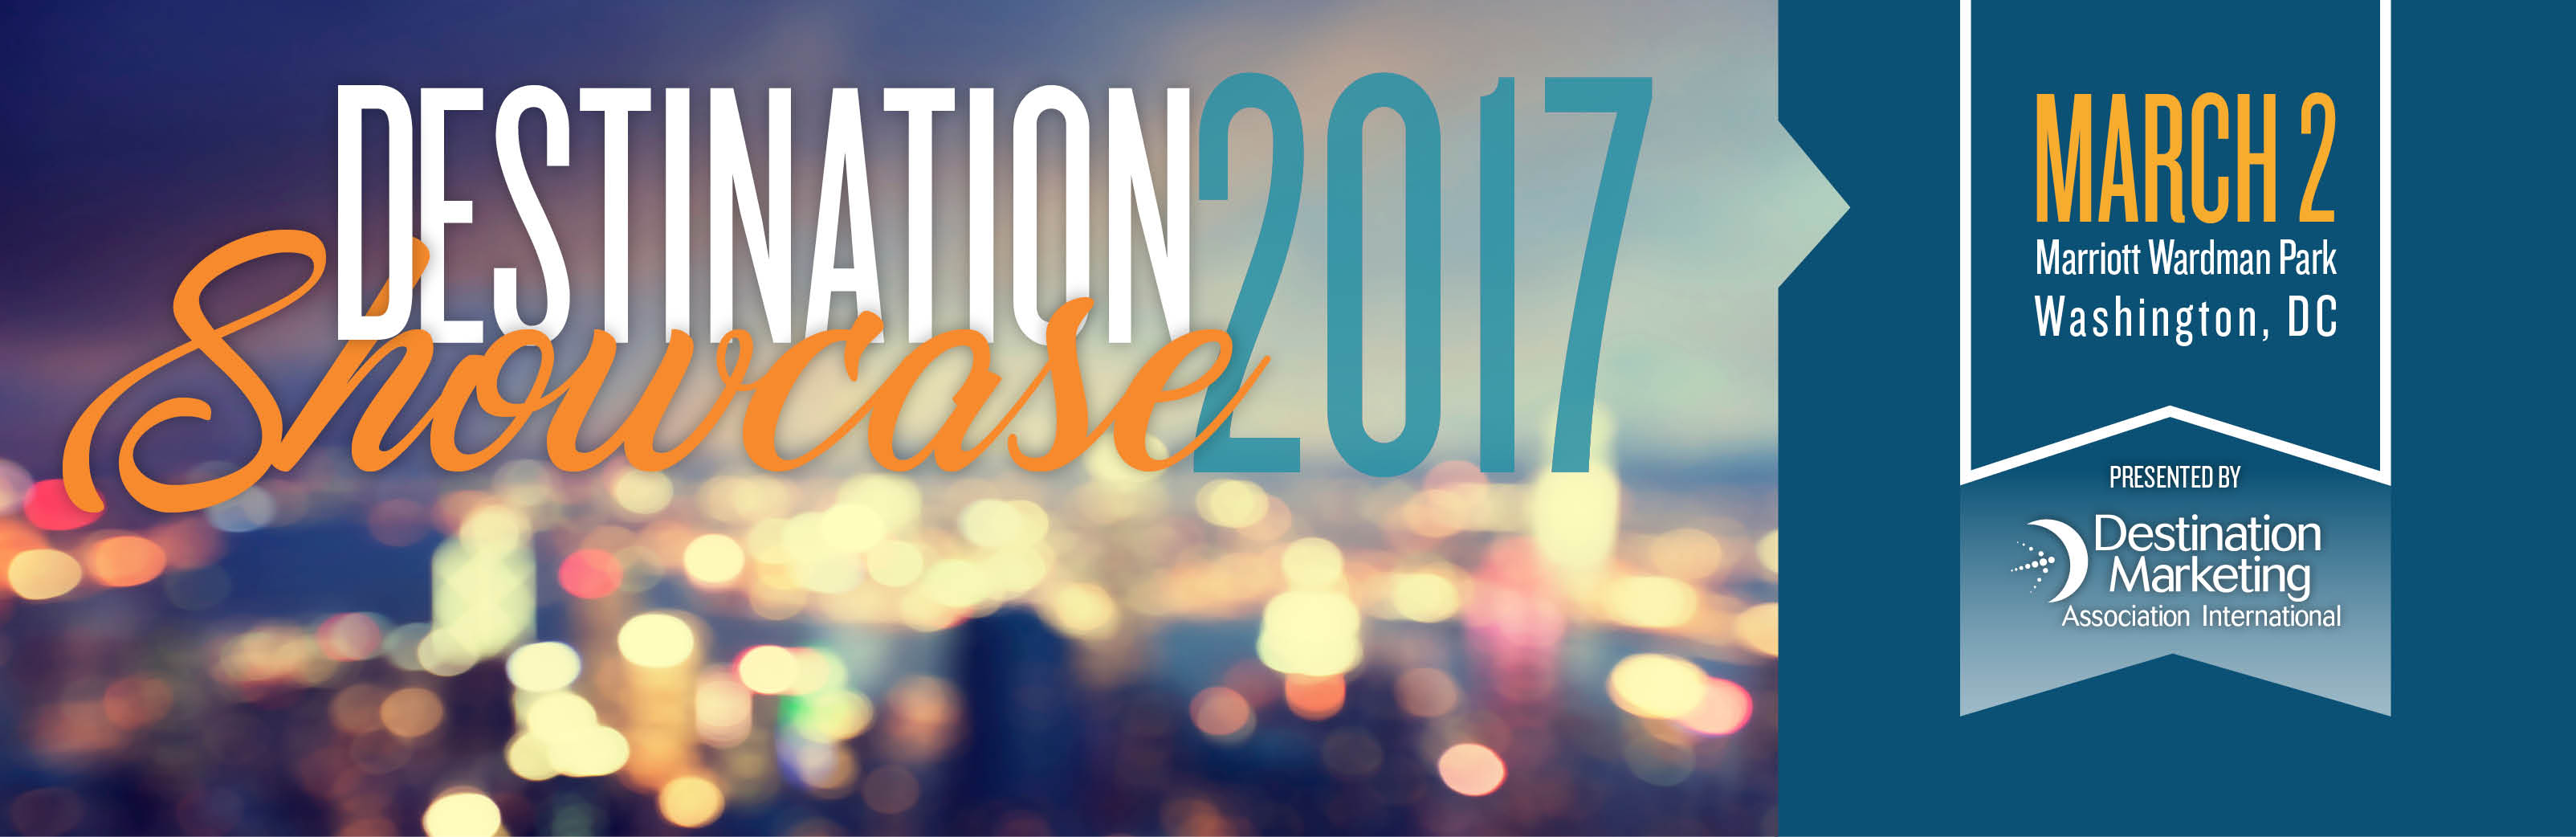 Destination Showcase 2017